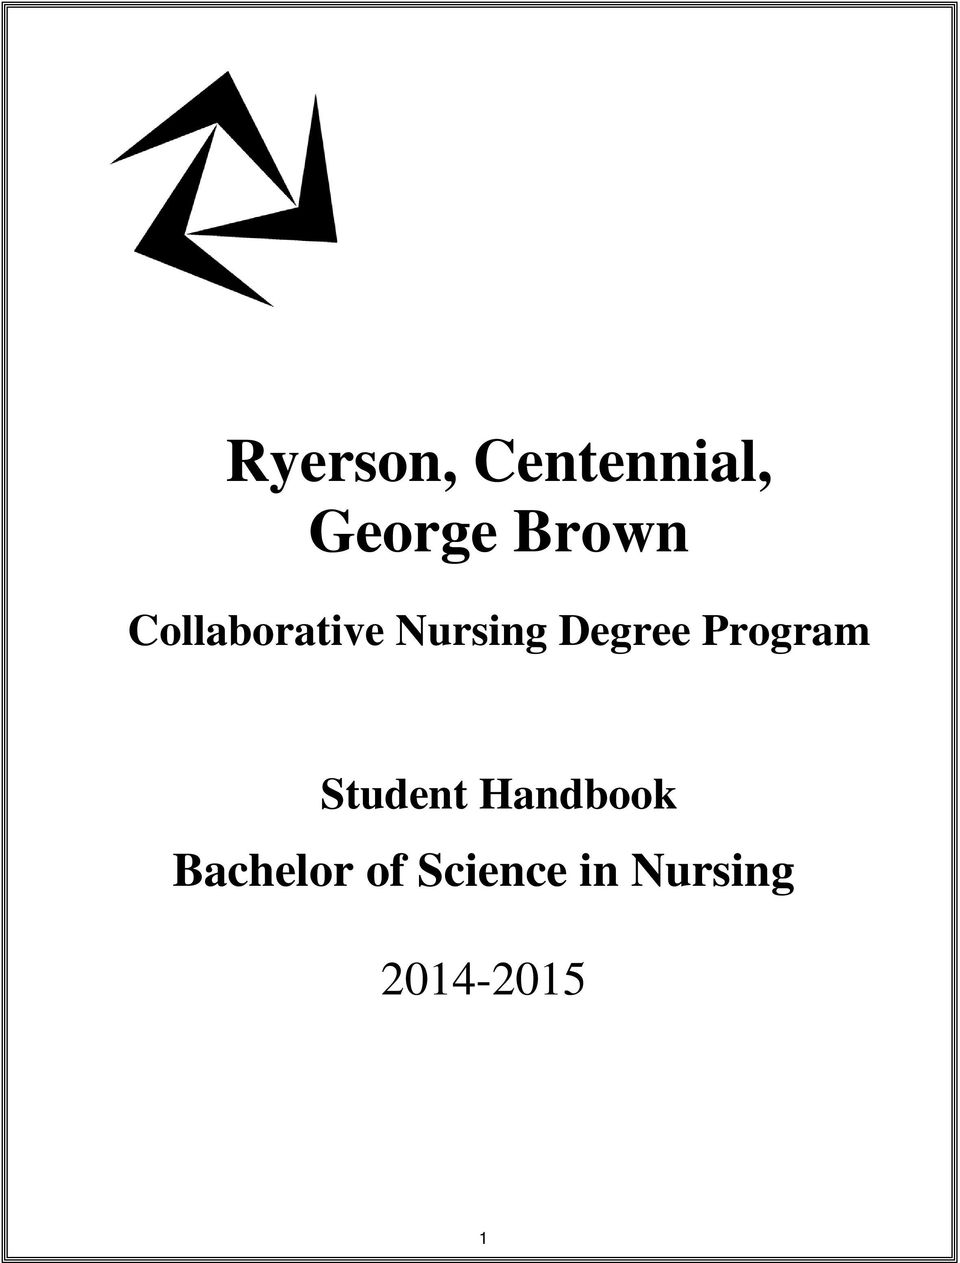 Degree Program Student Handbook